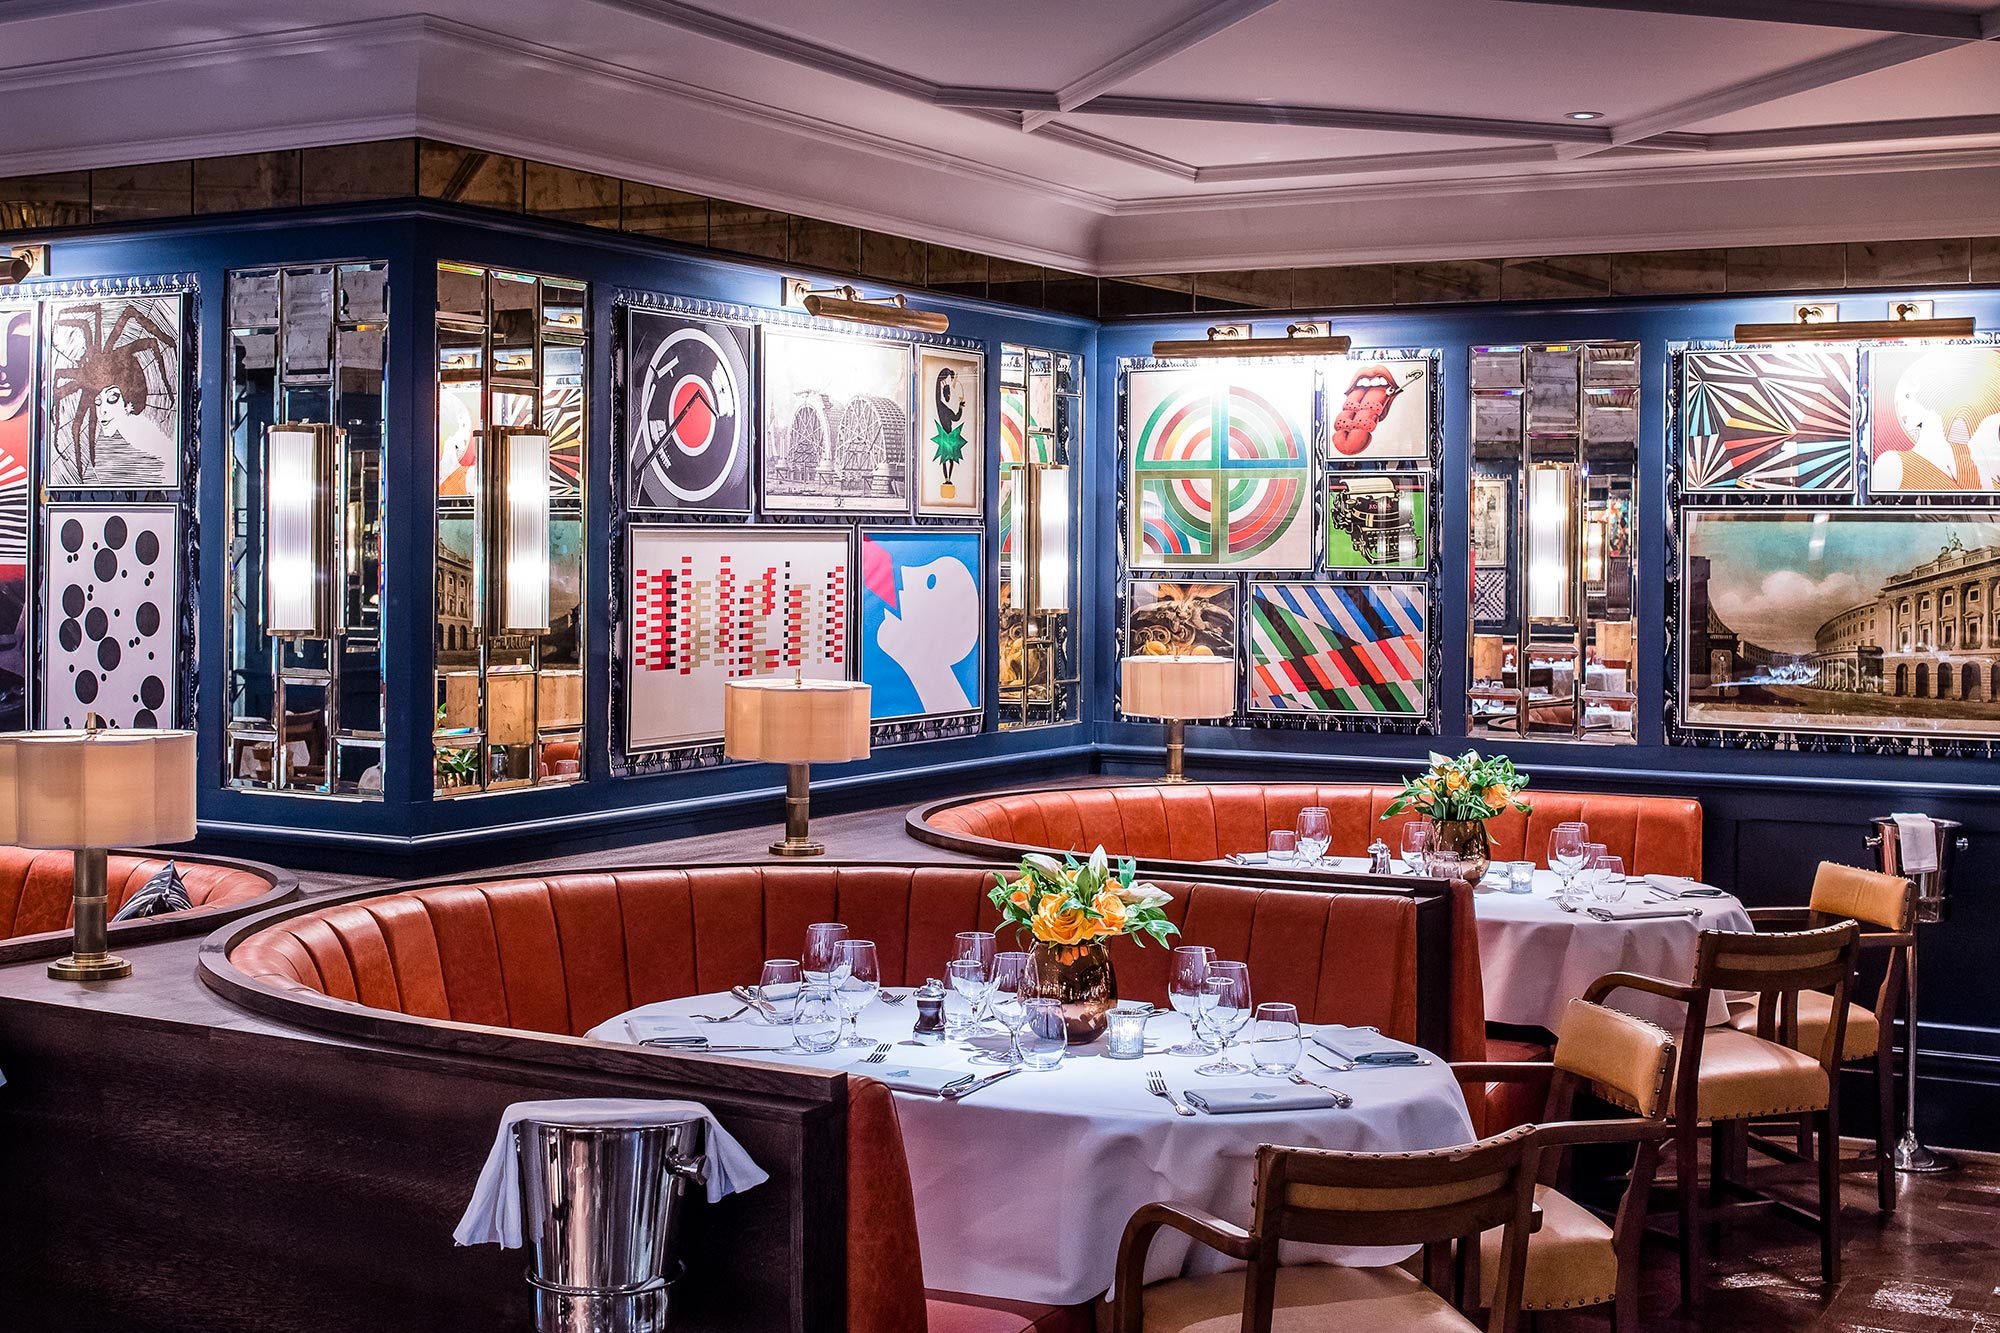 The-Ivy-Soho-Brasserie-restaurant-interiors-2